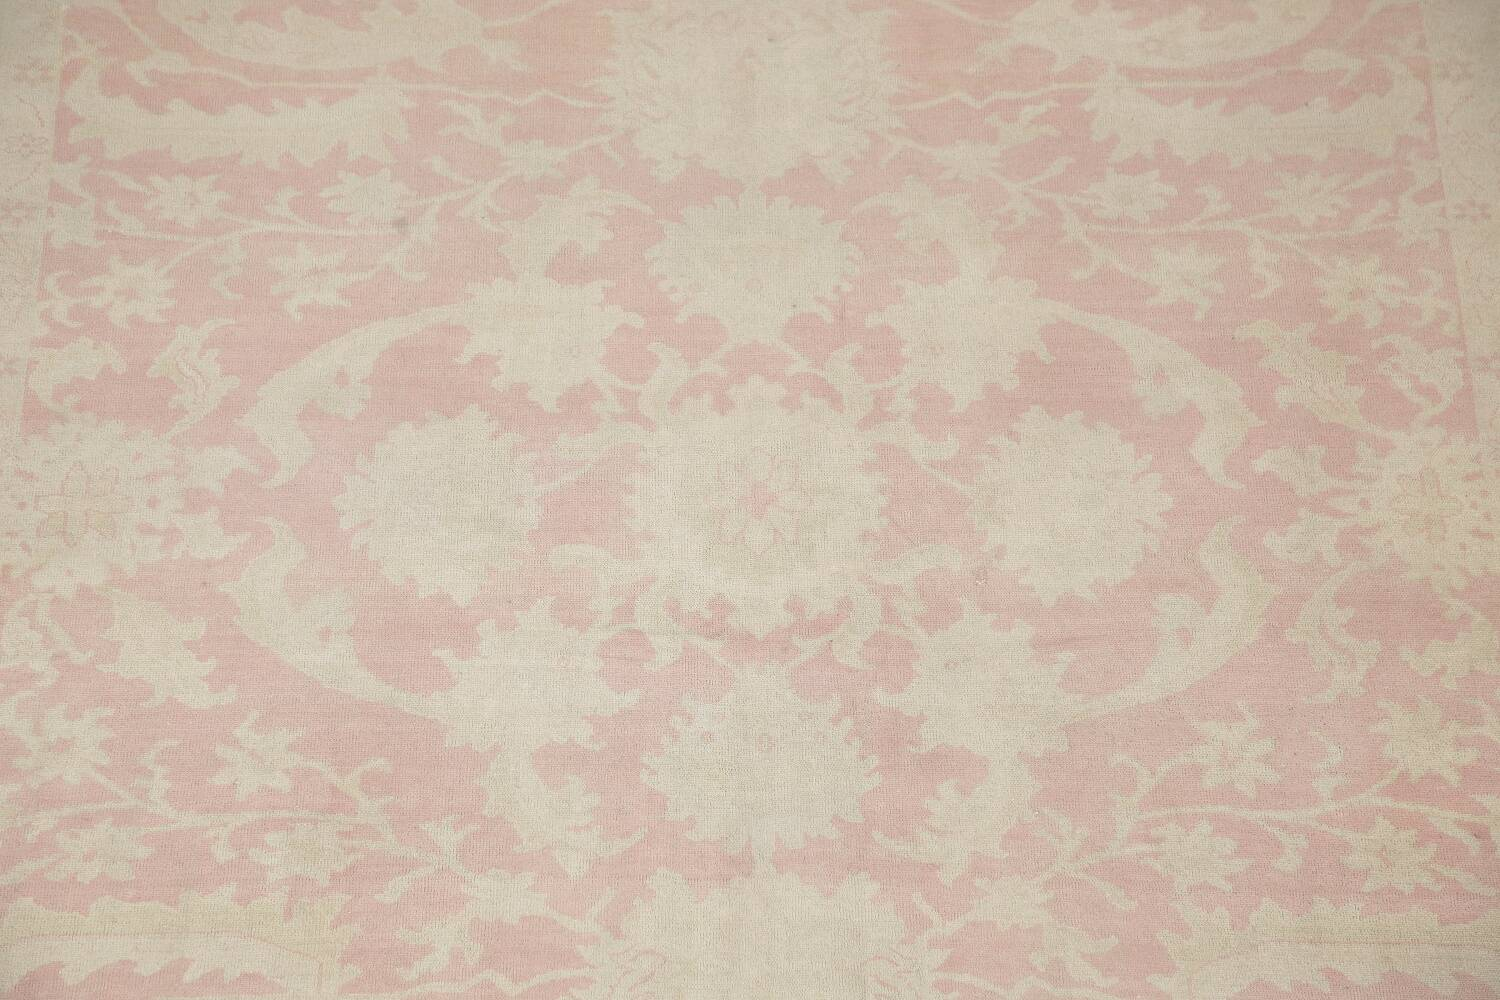 Antique Muted Floral Oushak Turkish Area Rug 8x10 image 4